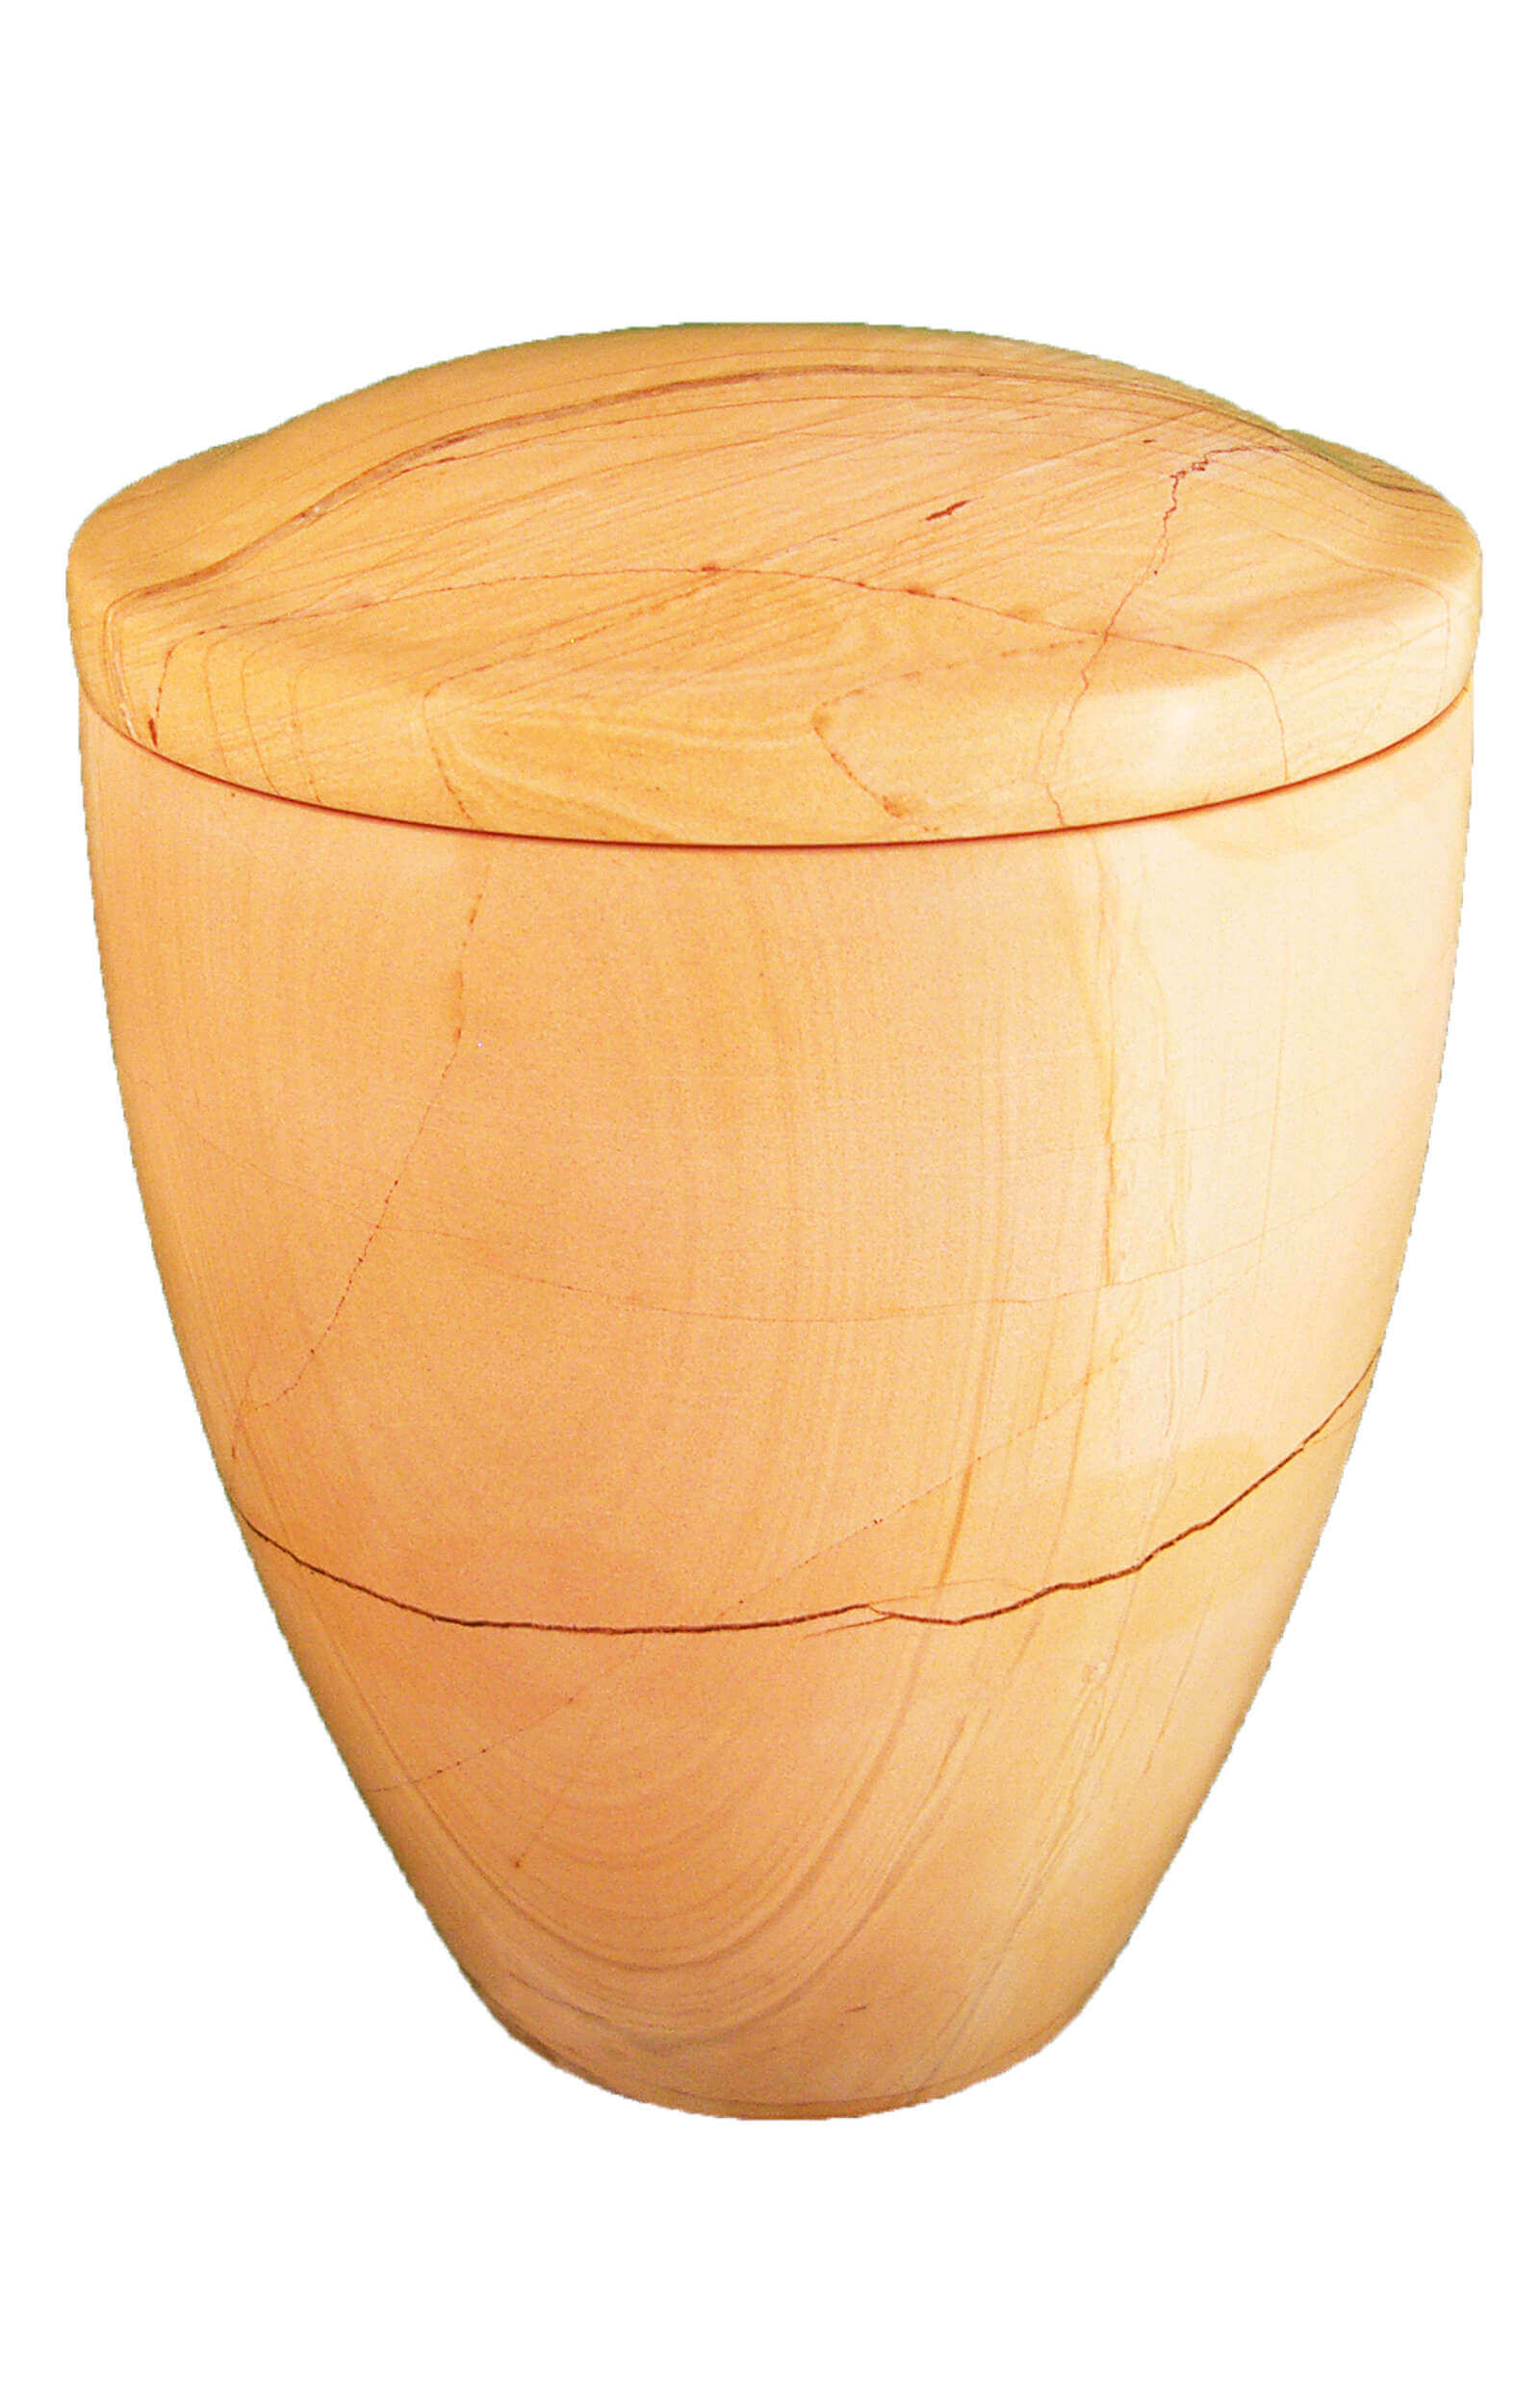 en MA2914 Burma Teak marbel urn for human ashes glossy cream white funeral urns on sale